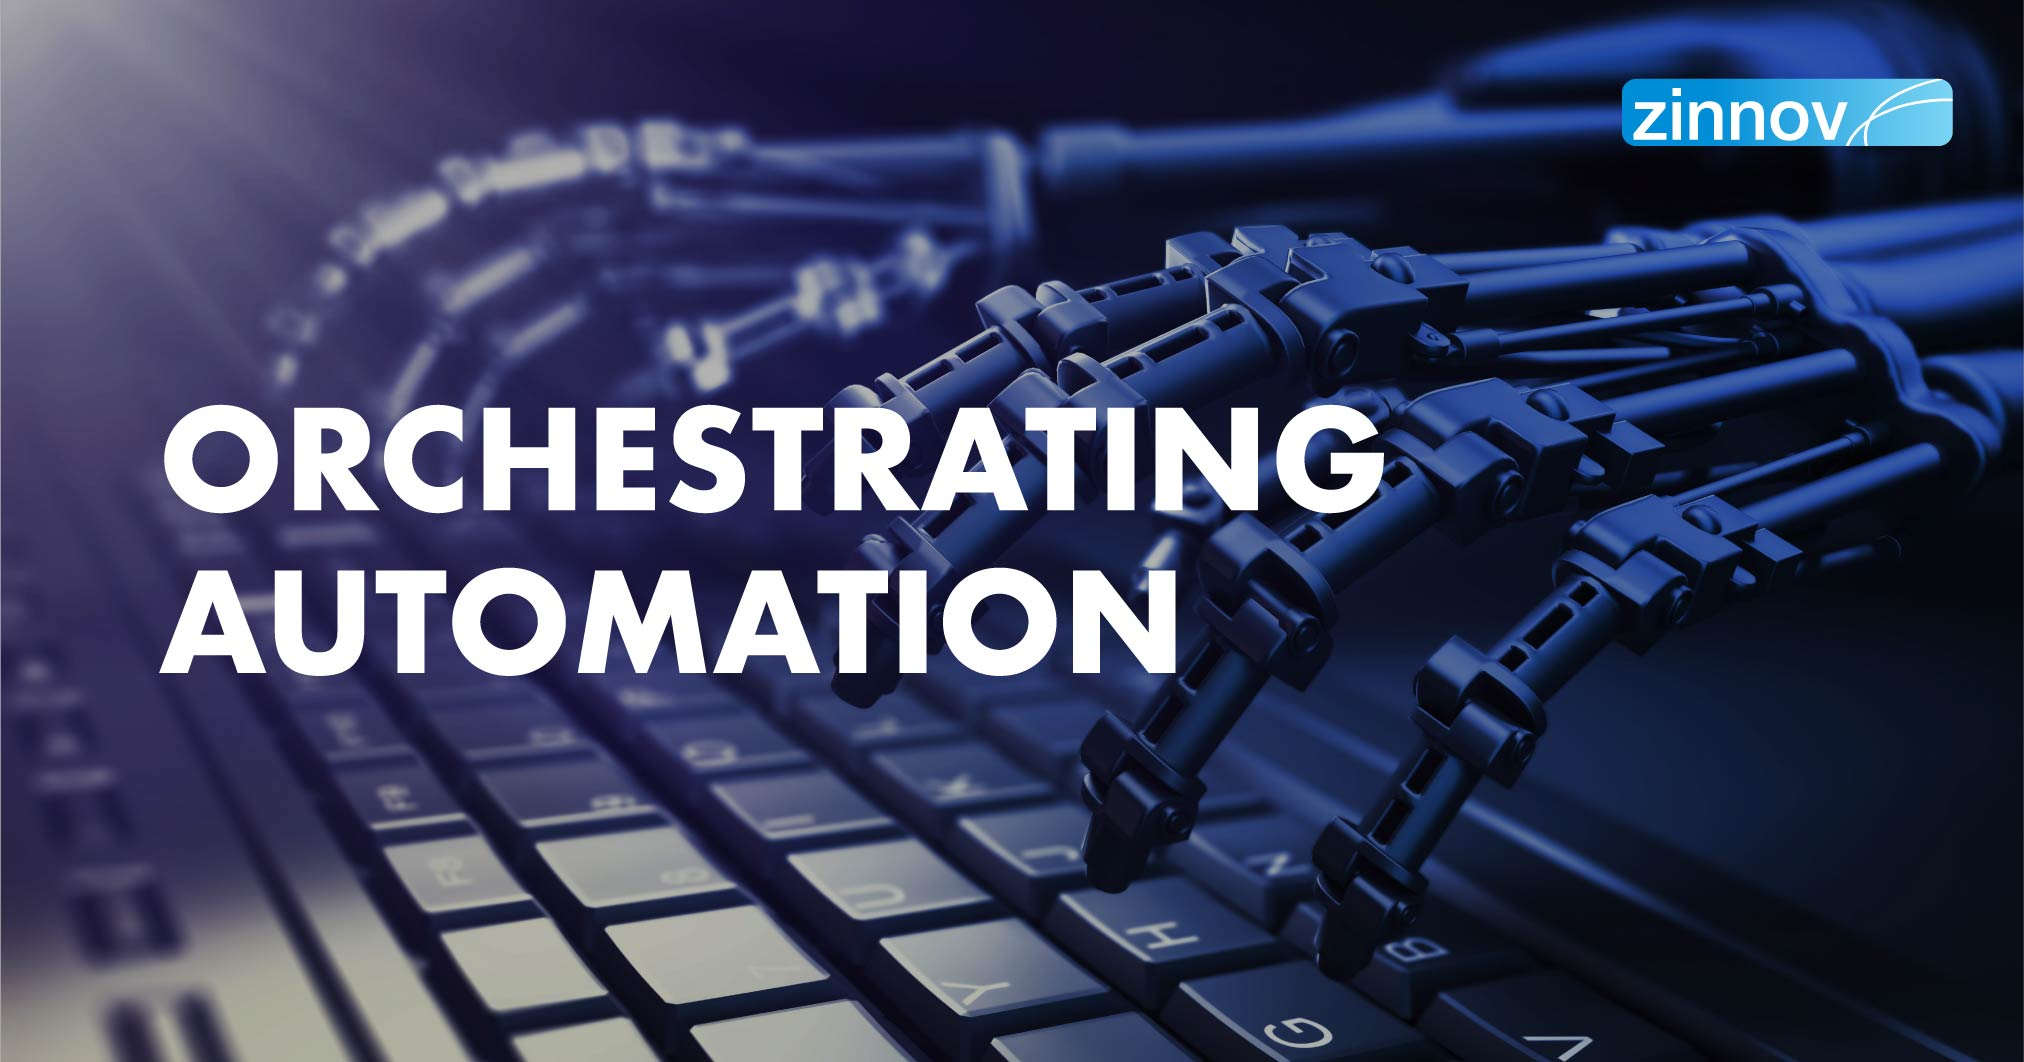 Automation Implementation – Is it a One-size-fits-all approach or a Value-based approach?